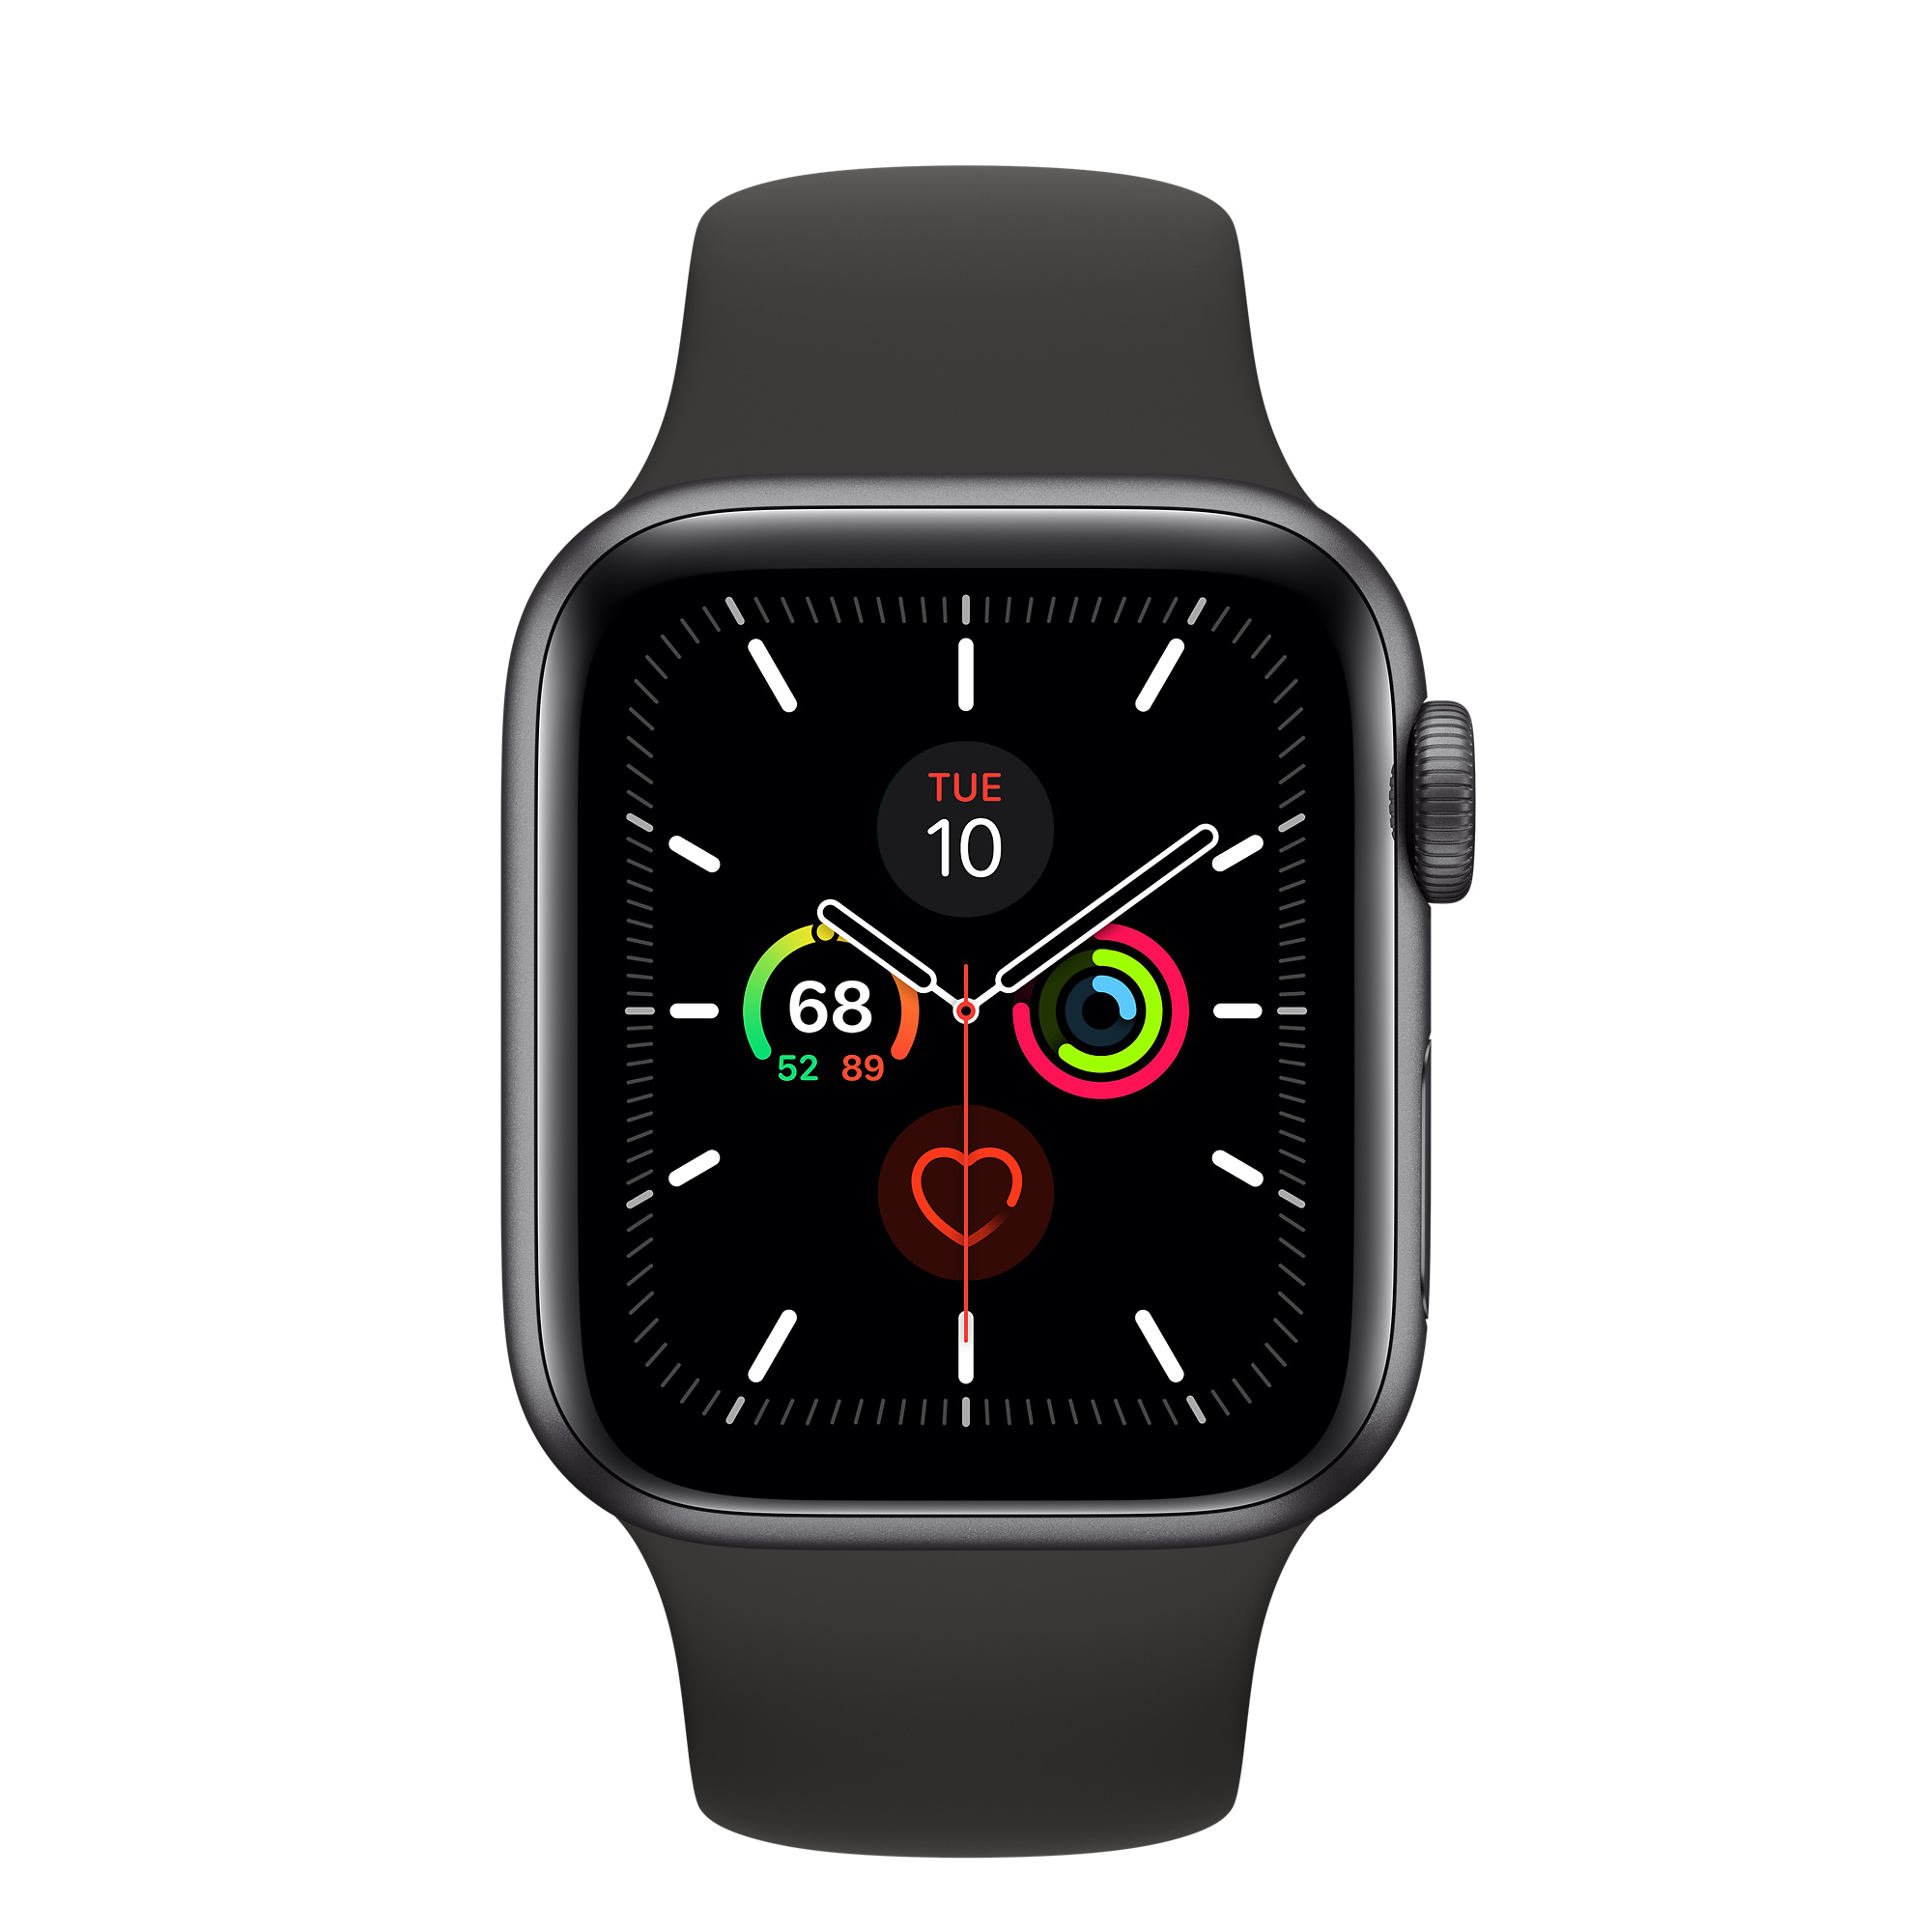 Refurbished Apple Watch Series 5 GPS, 40mm Space Gray Aluminum